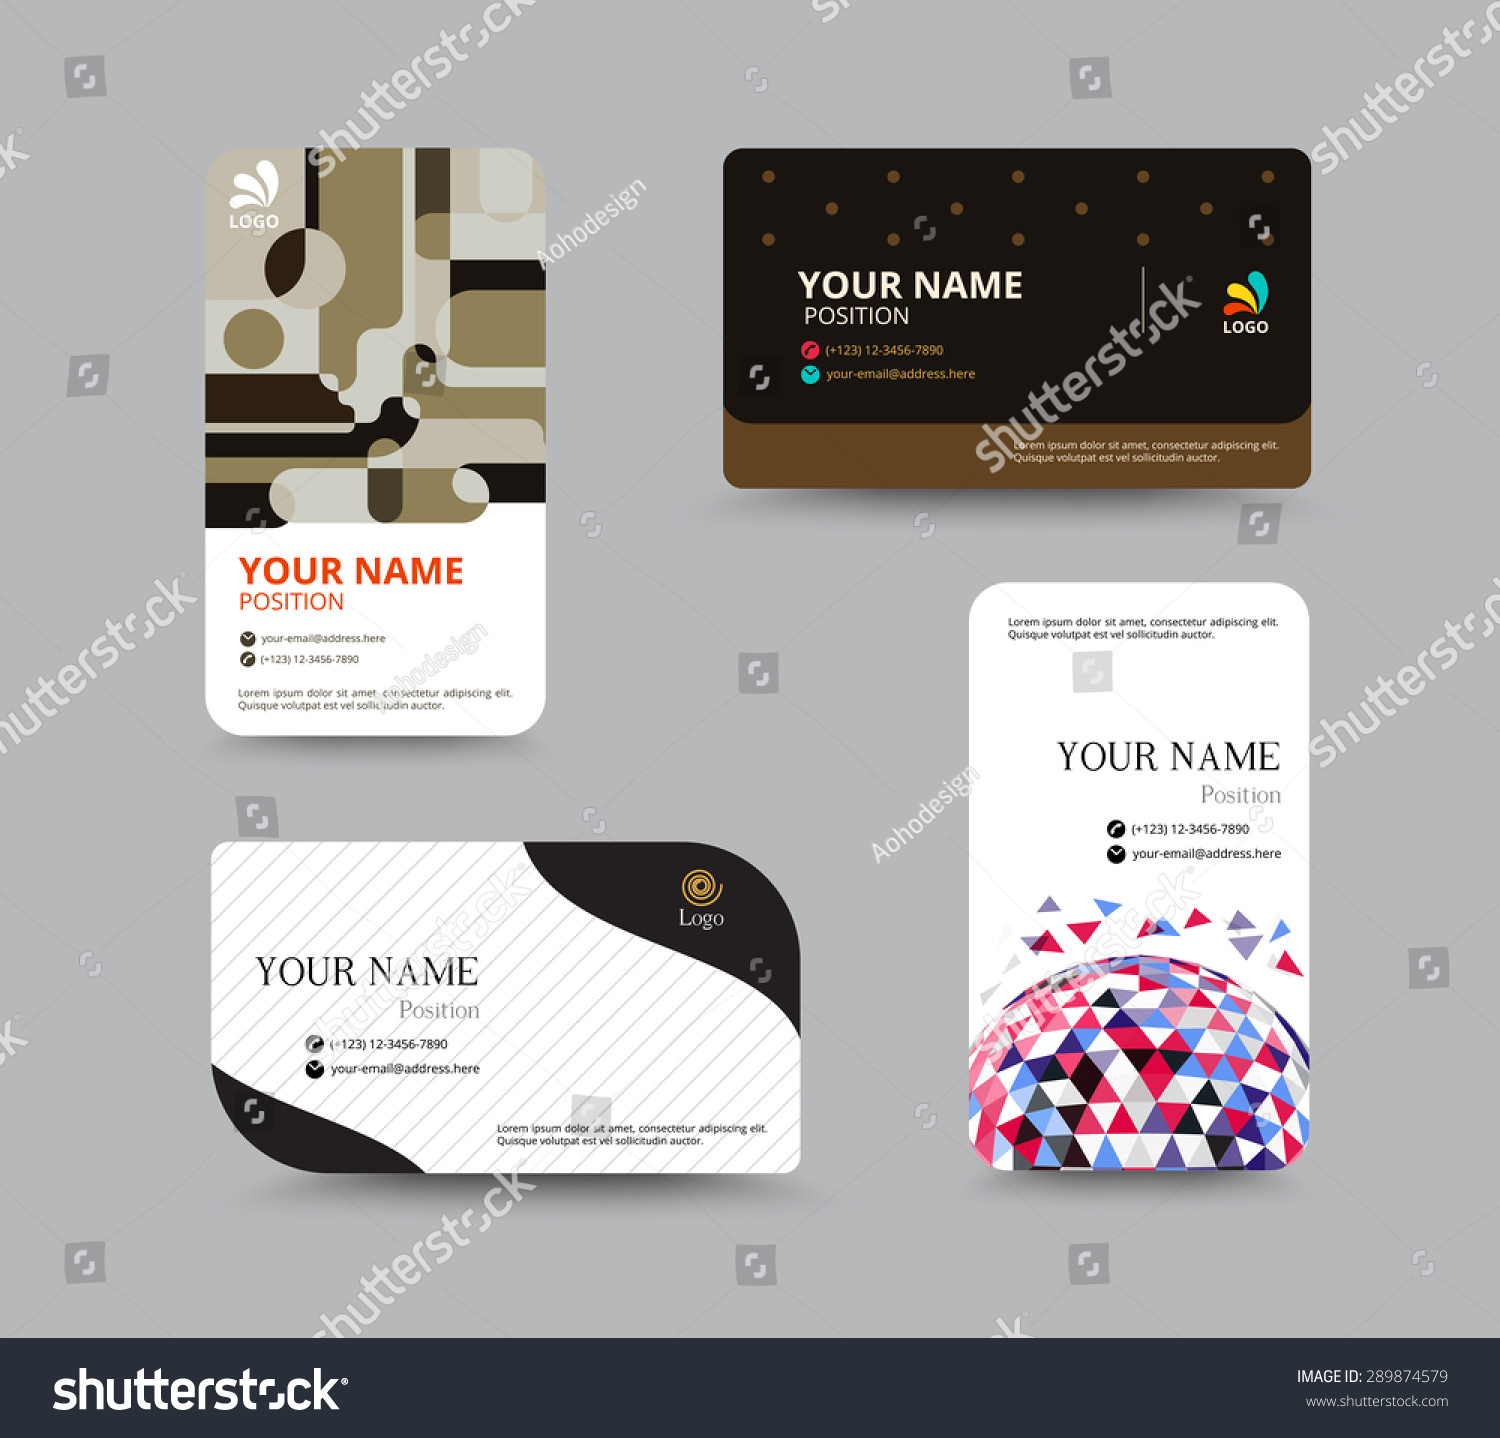 Business Card Template Business Card Layout Stock Vector 289874579 ...